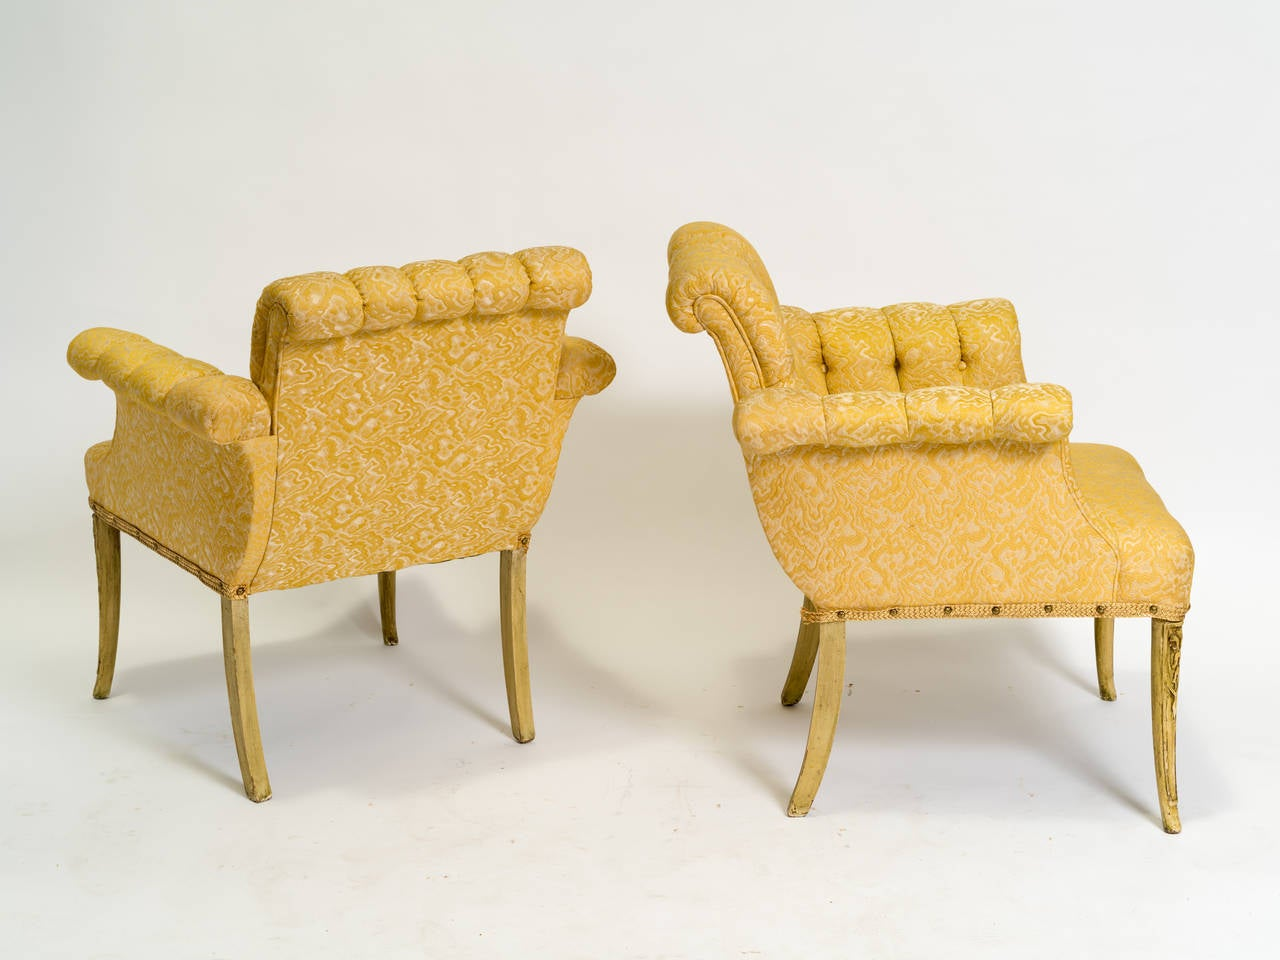 Pair Of 1940s Hollywood Regency Tufted Lounge Chairs For